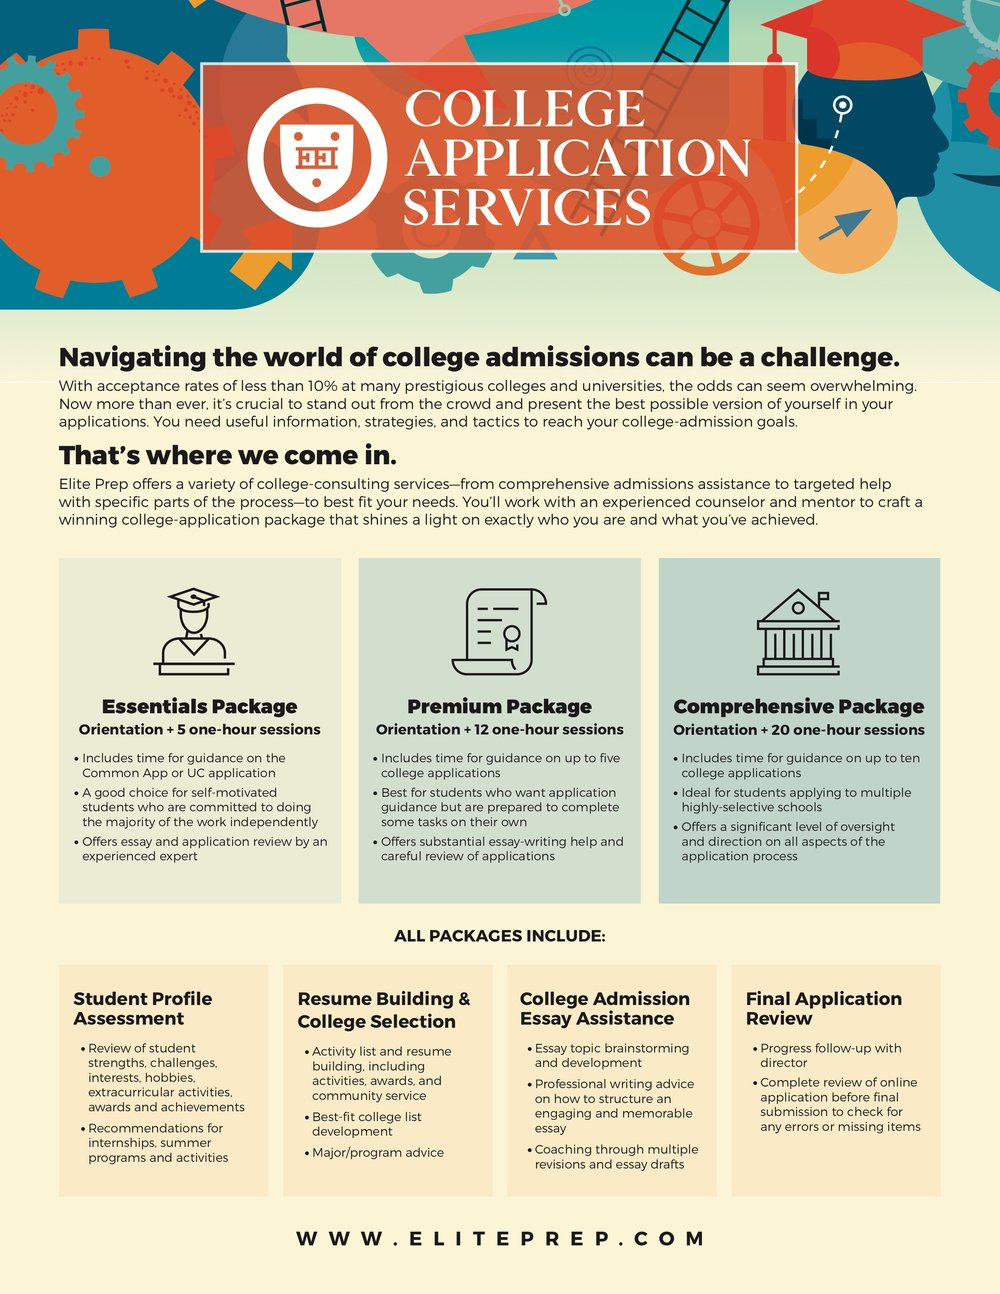 College Application Services Flyer 2018 E2.jpg